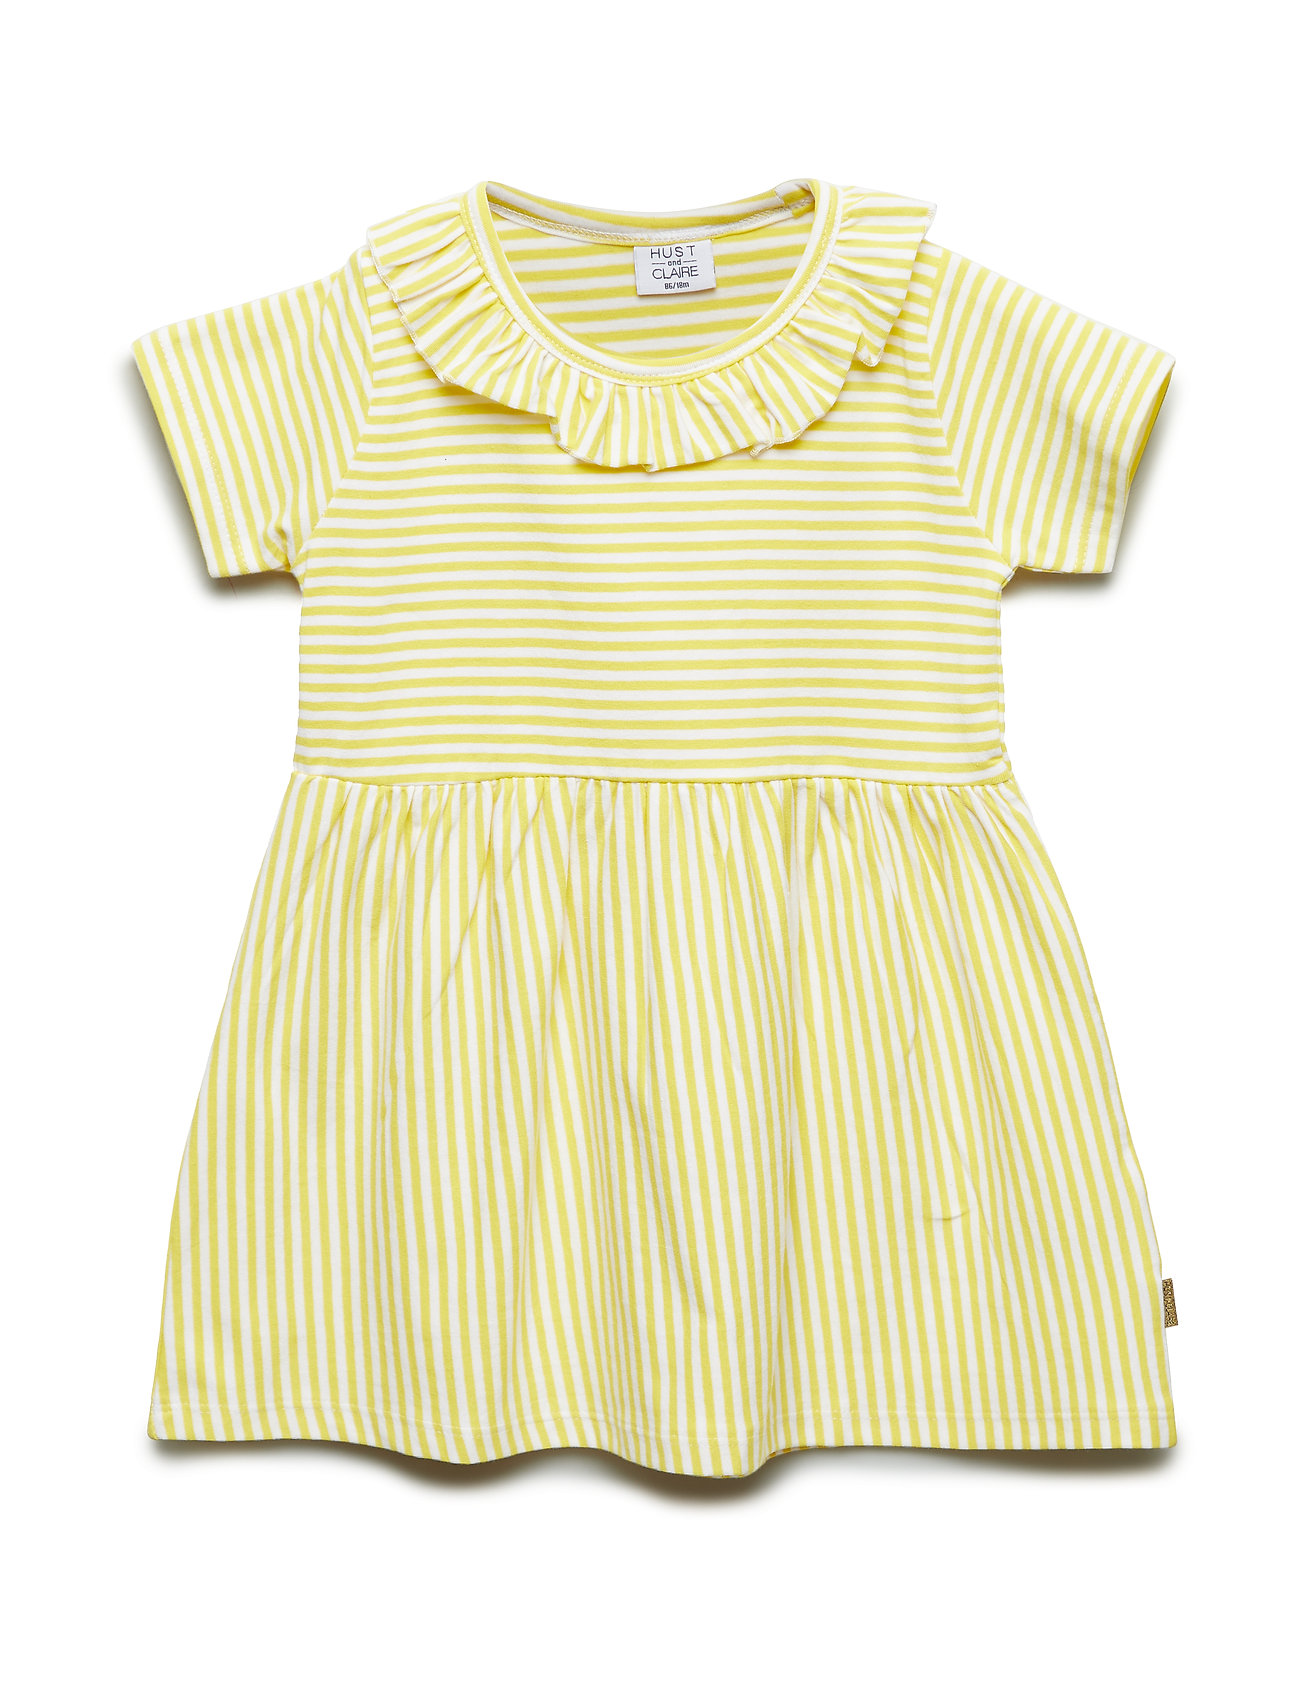 Hust & Claire Daliah - Dress - LEMON